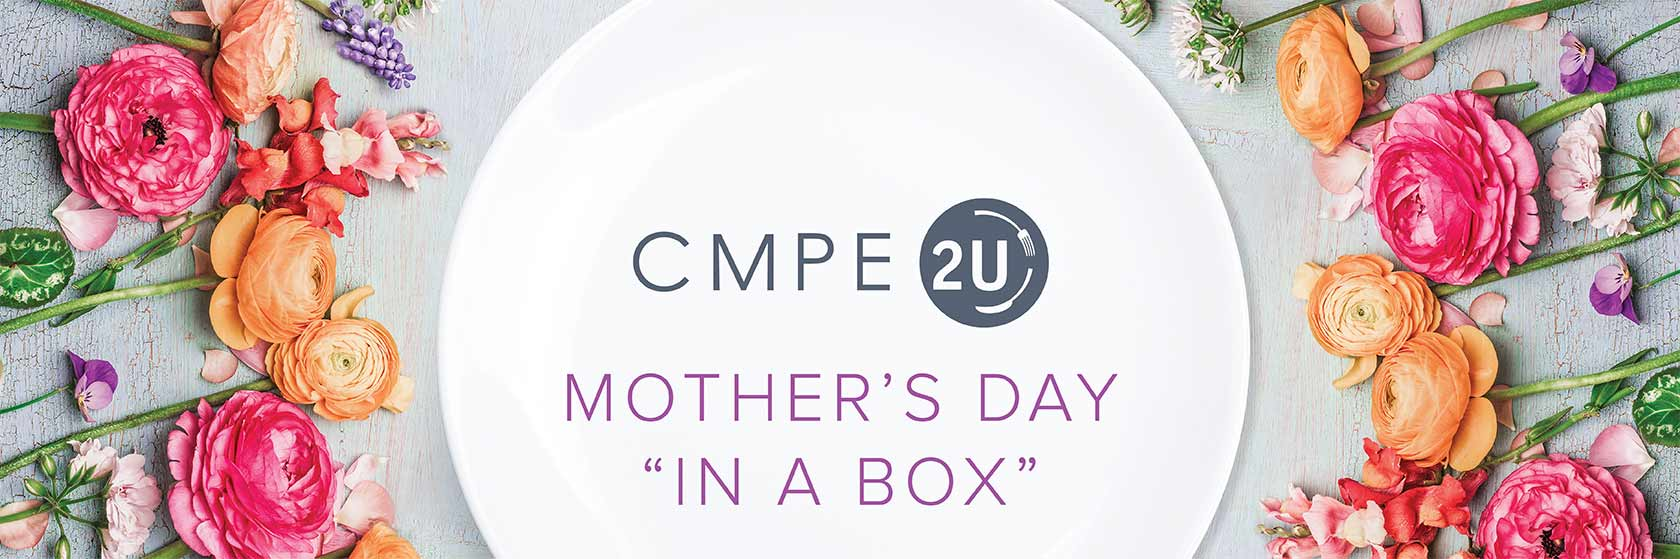 Mother's Day Features